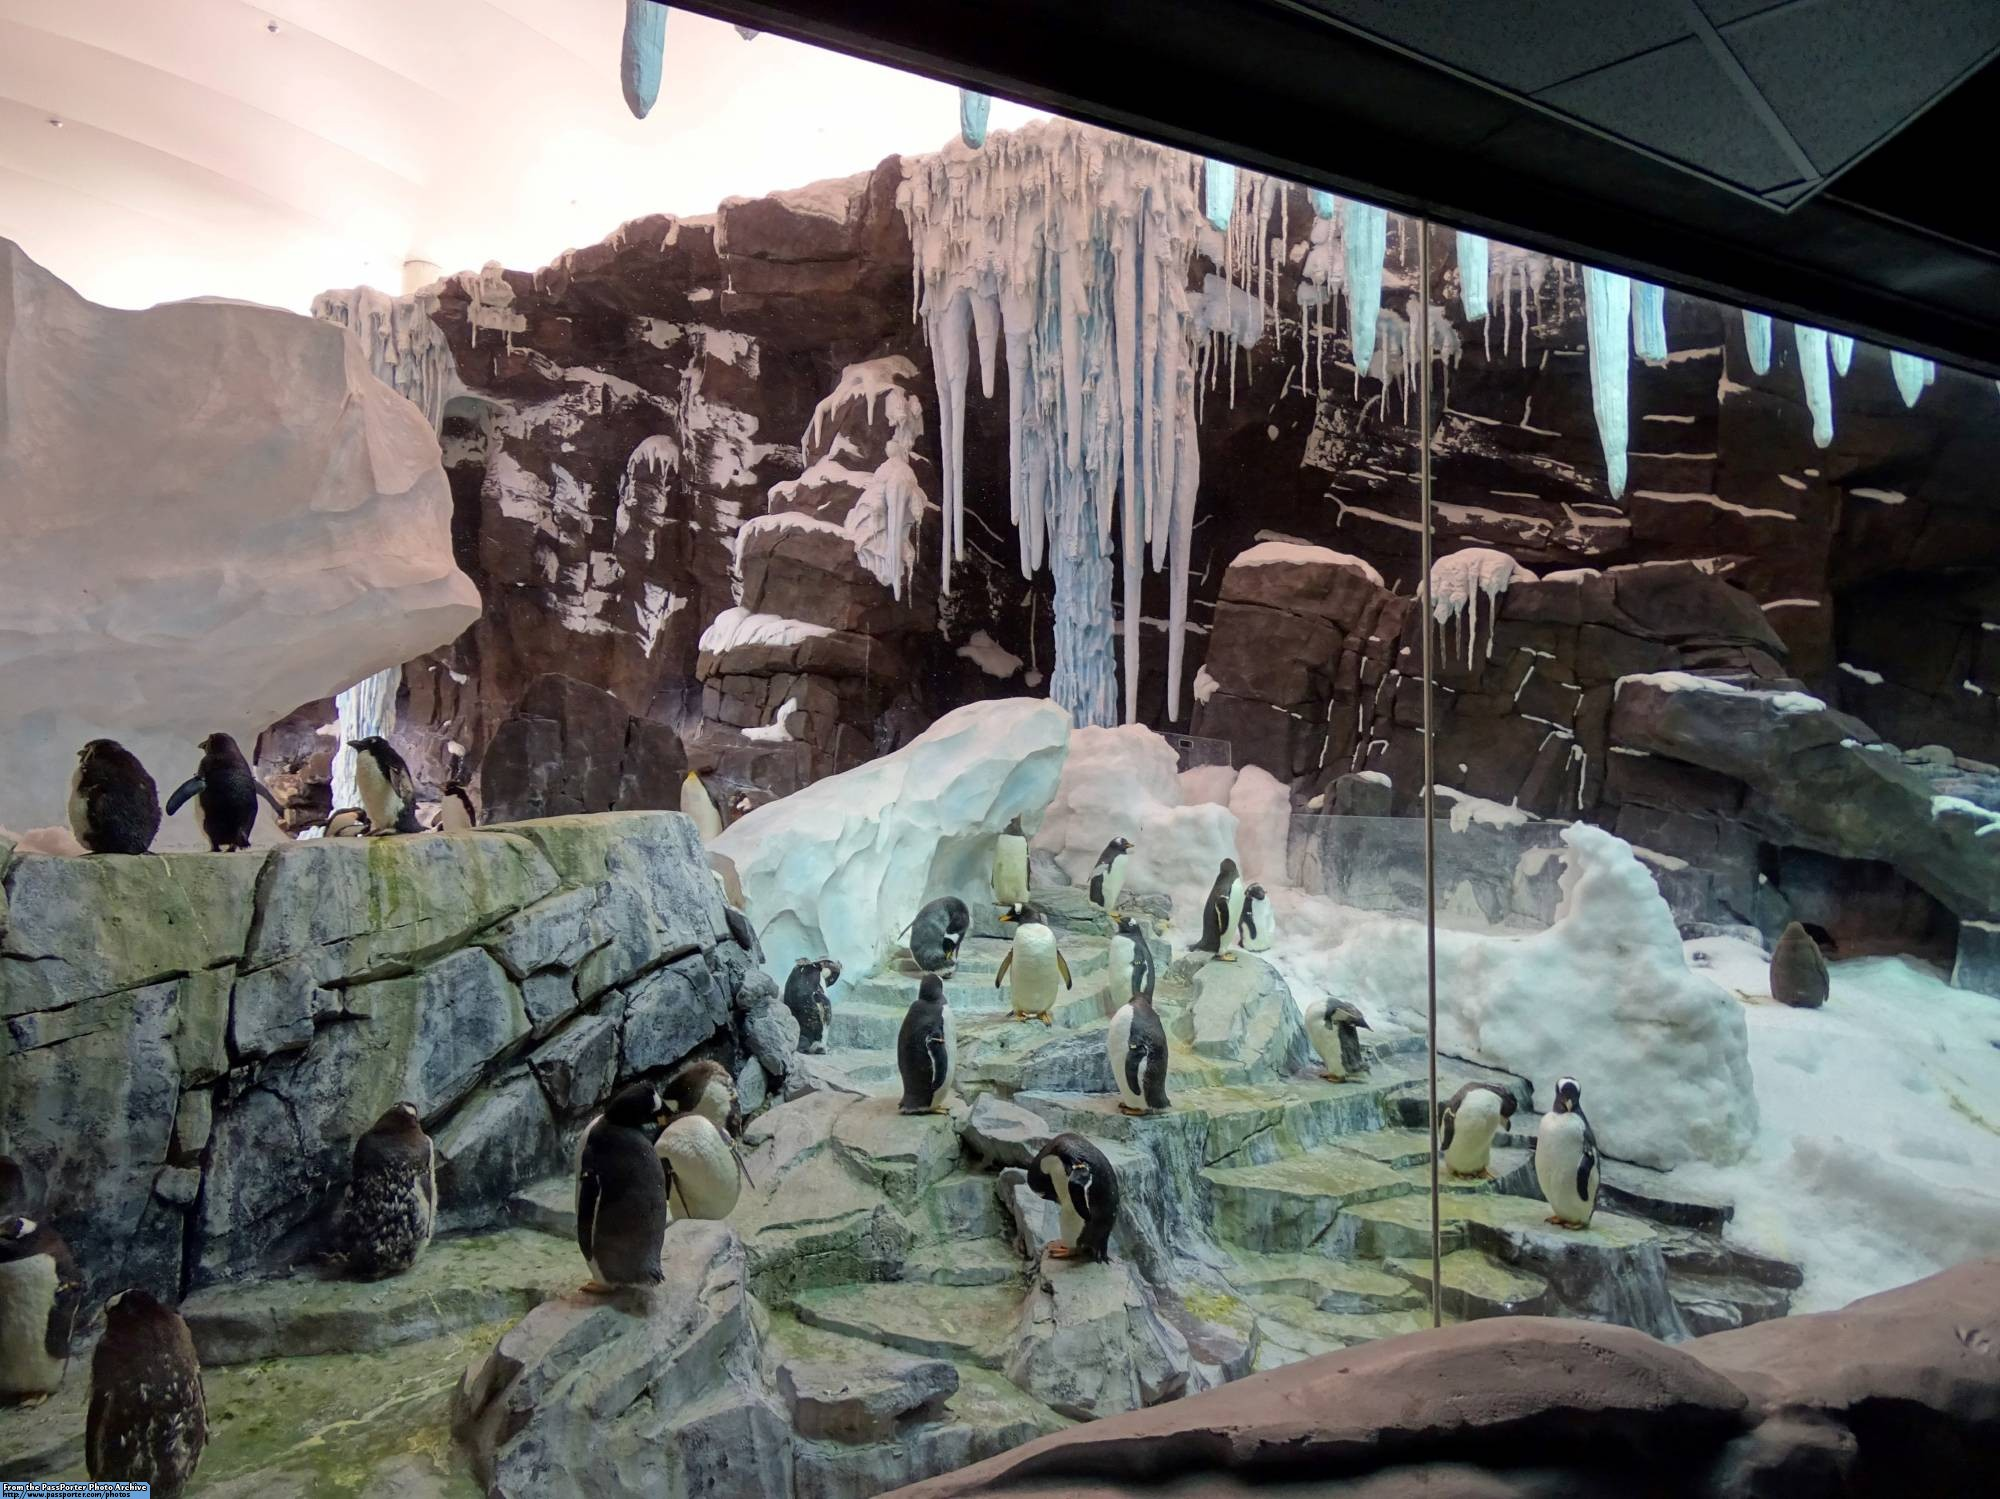 Explore Antarctica: Empire of the Penguin at SeaWorld Orlando |PassPorter.com